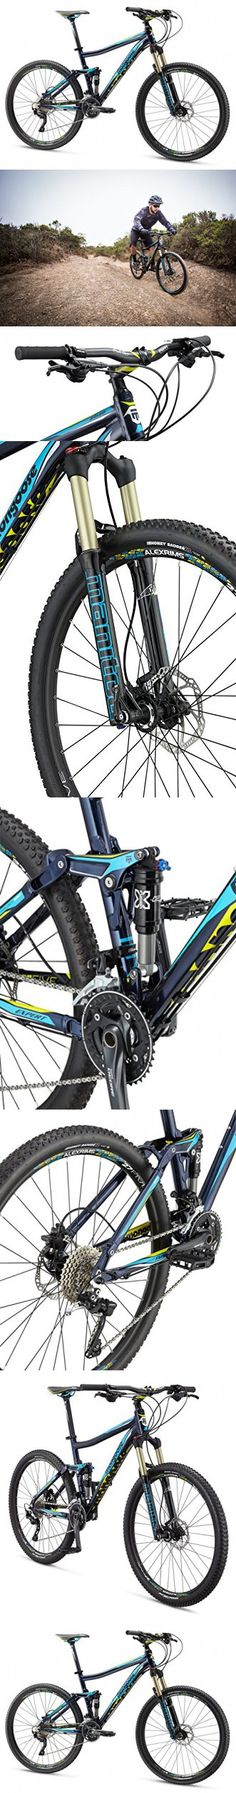 Pacific Evolution 20 Inch Boy/'s Mountain Bike steel frame 18 speed Bicycle Blue